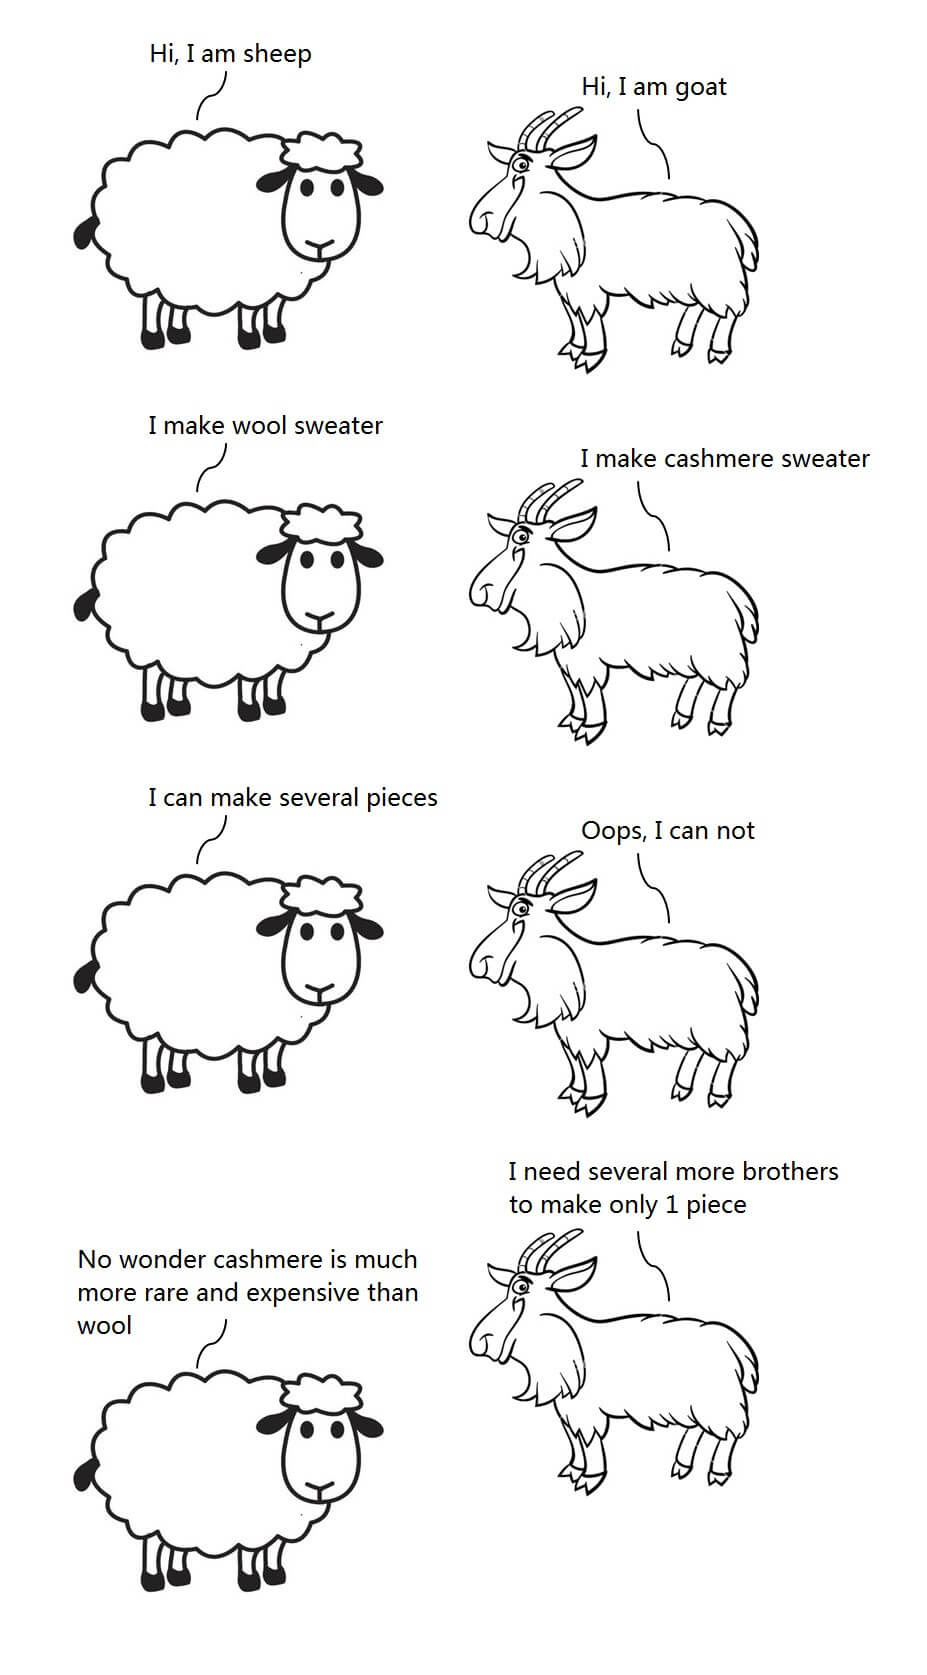 cashmere and wool